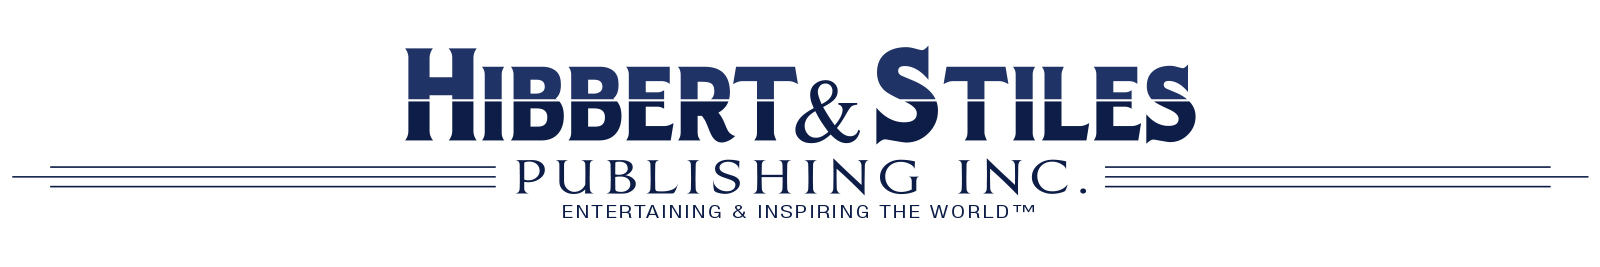 Hibbert and Stiles Publishing Inc. Logo